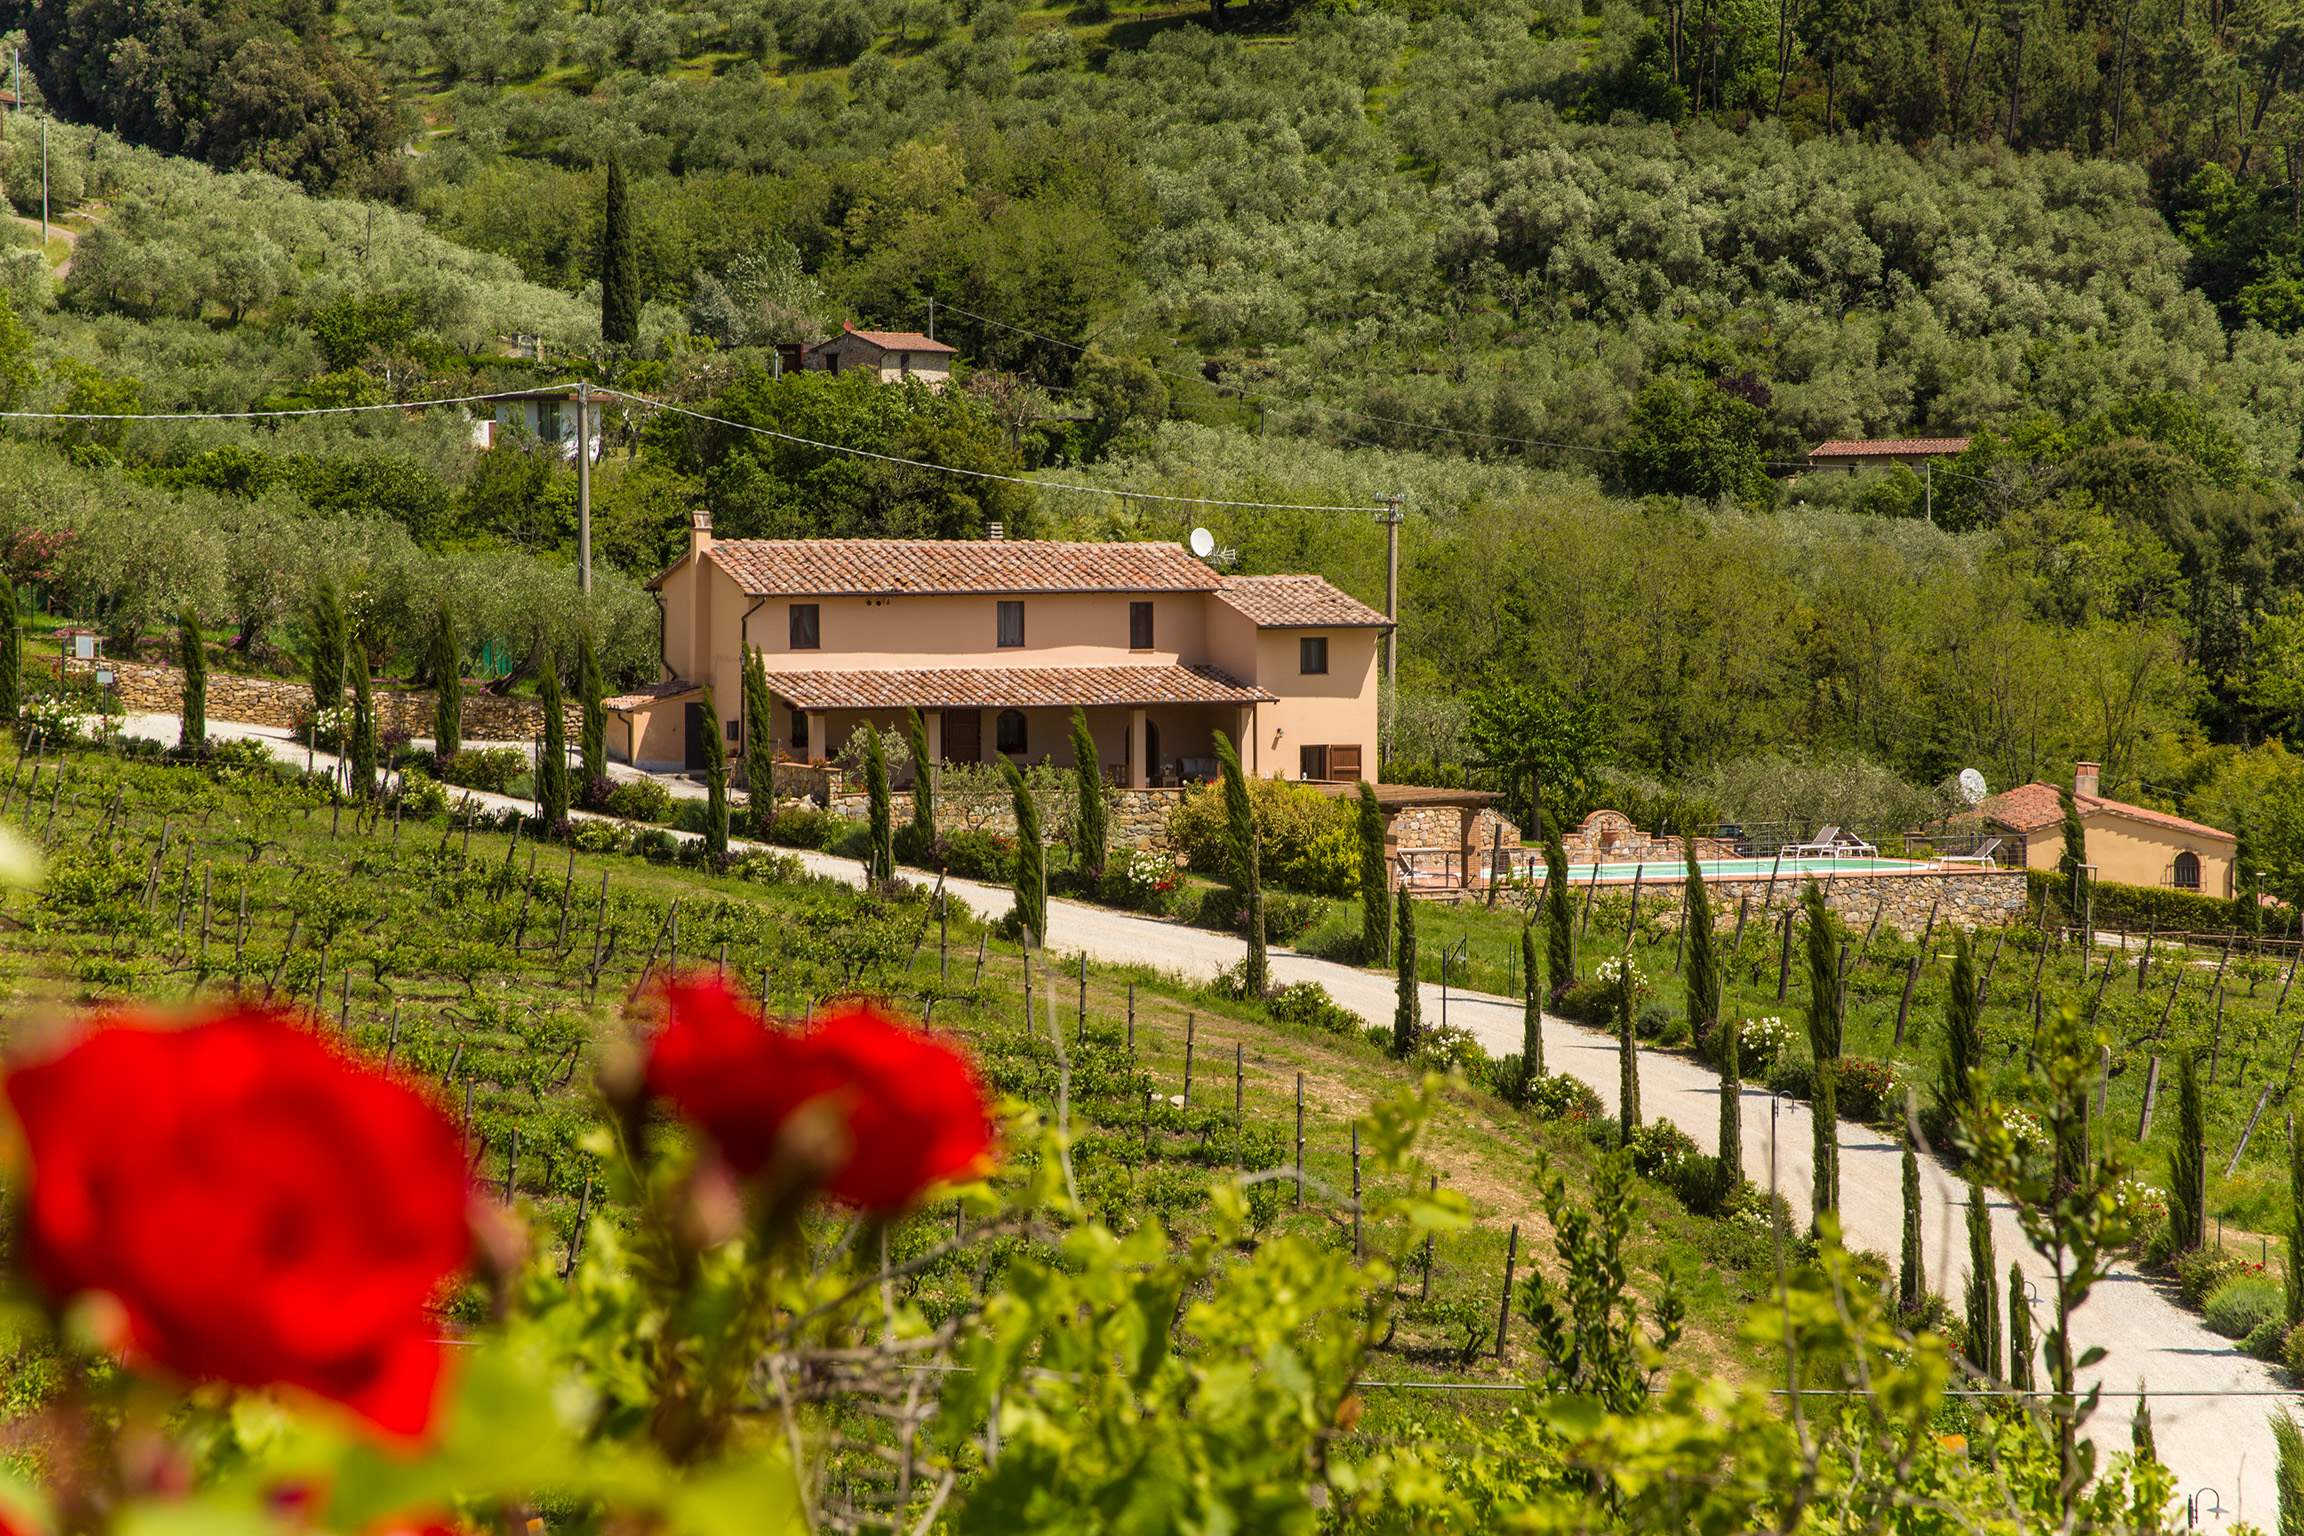 Casa Di Dante, 3 bedroom villa in North Tuscany - Pisa & Lucca Area, Tuscany Photo #17